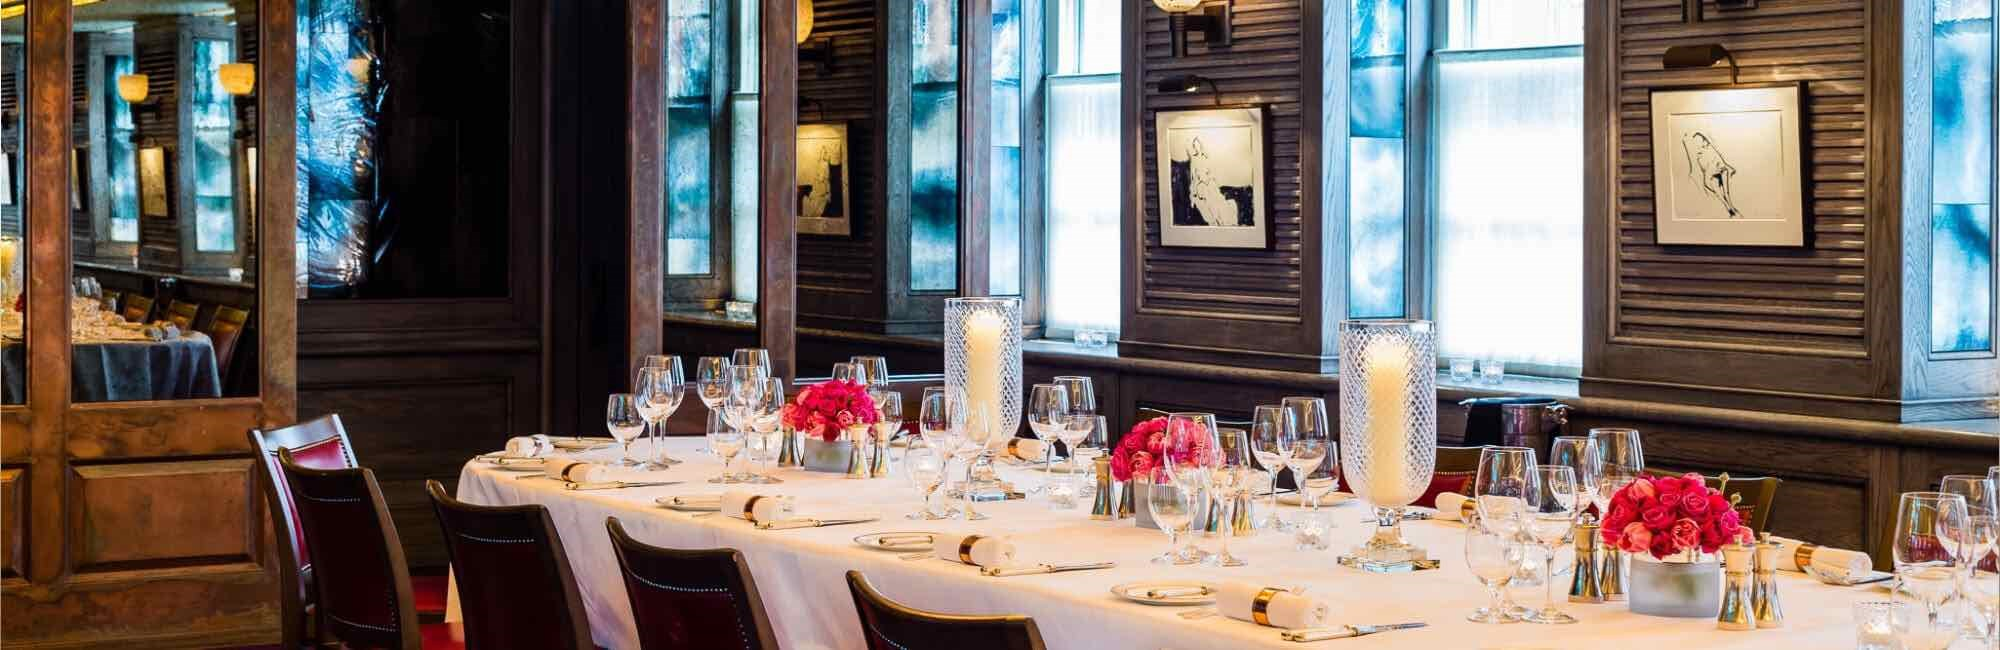 34 mayfair private dining event 1